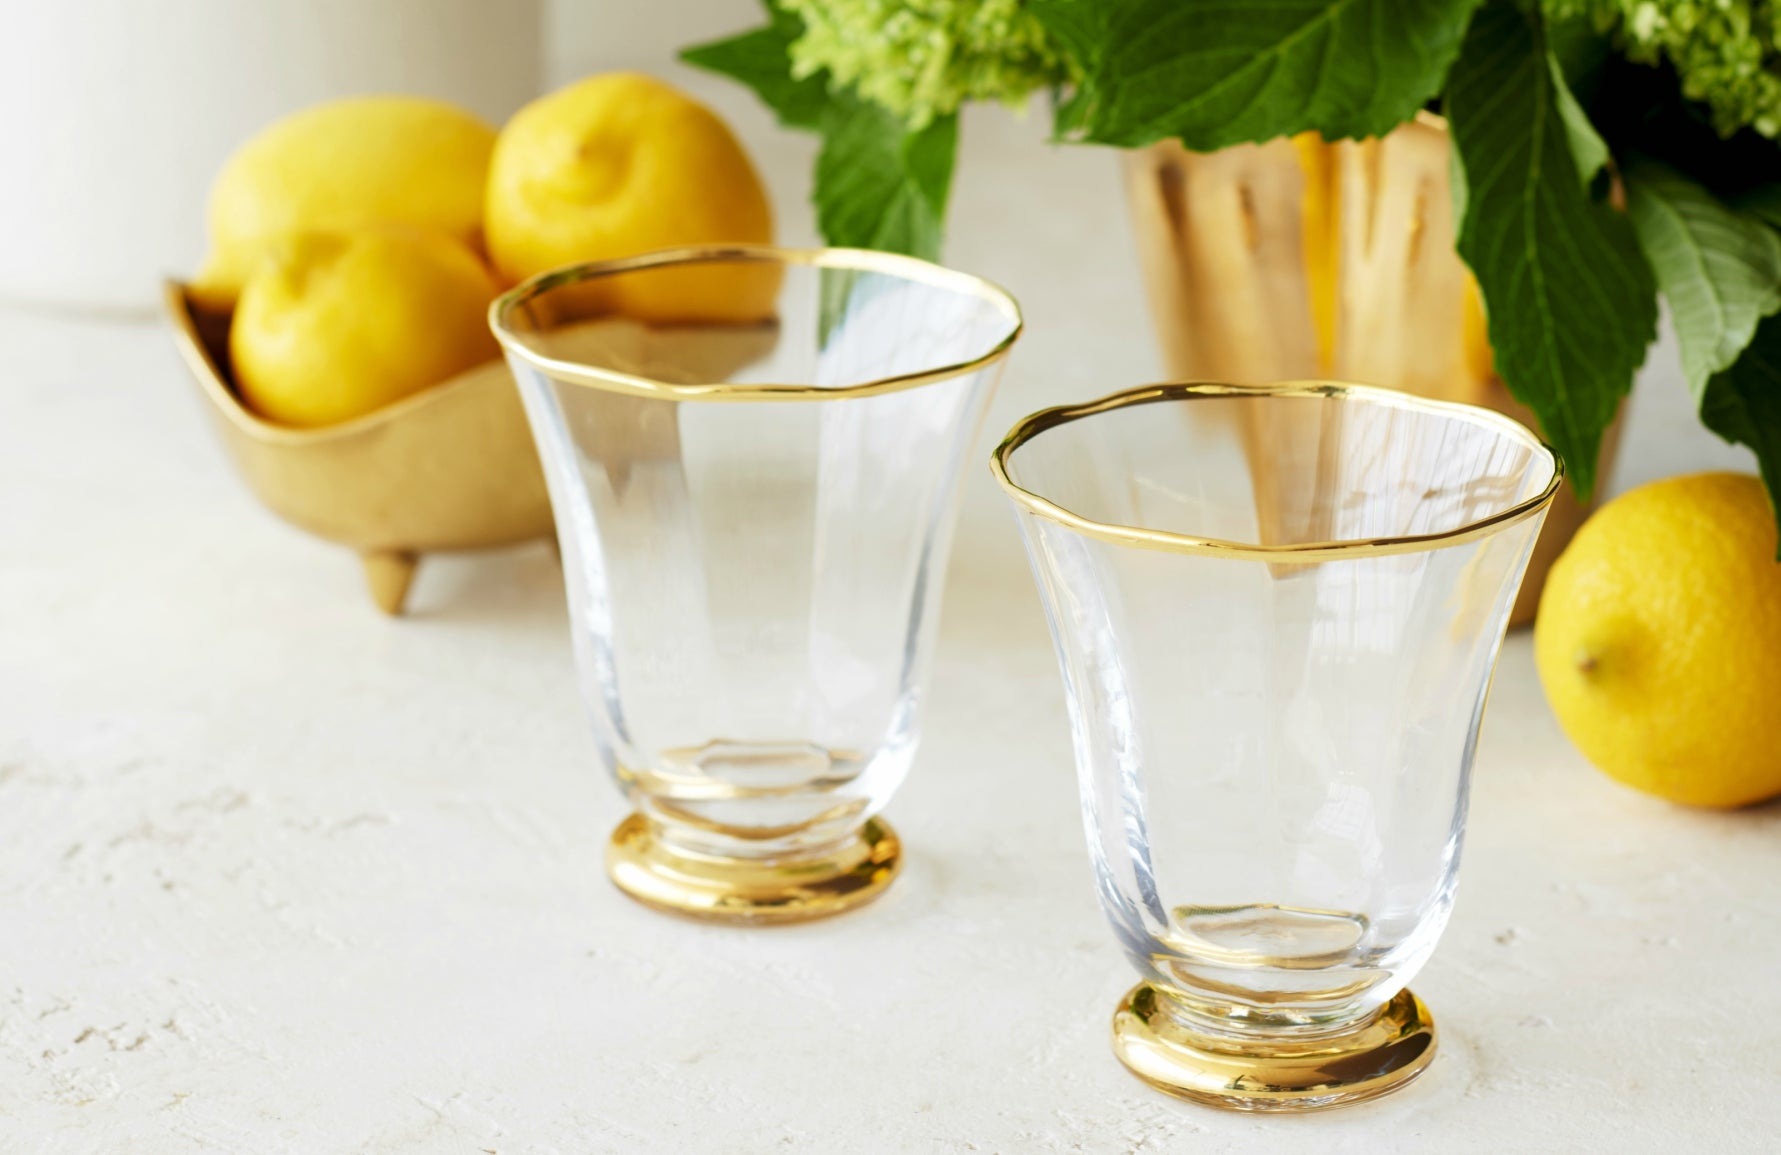 How To Host The Perfect Easter Party | AERIN glassware |LuxDeco.com